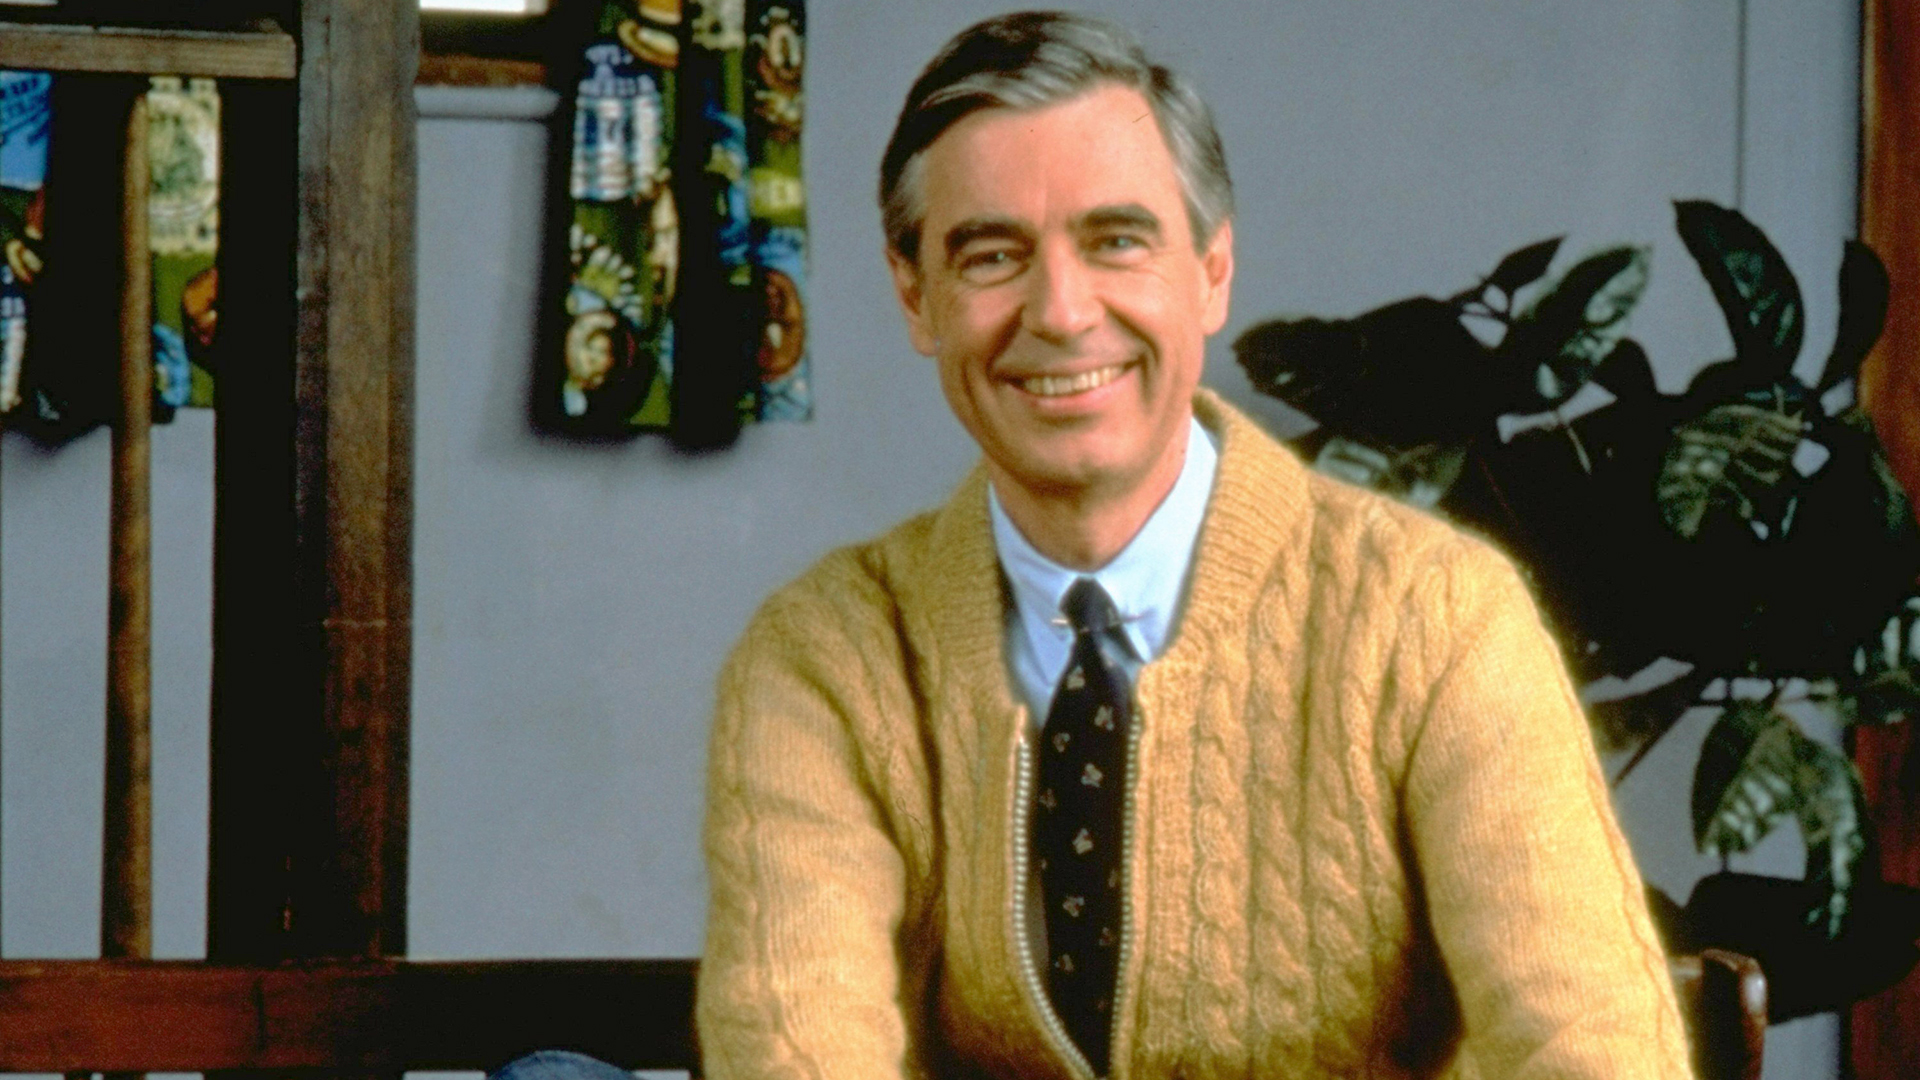 Mister Rogers 'hated' TV — so 48 years ago, he changed it ...